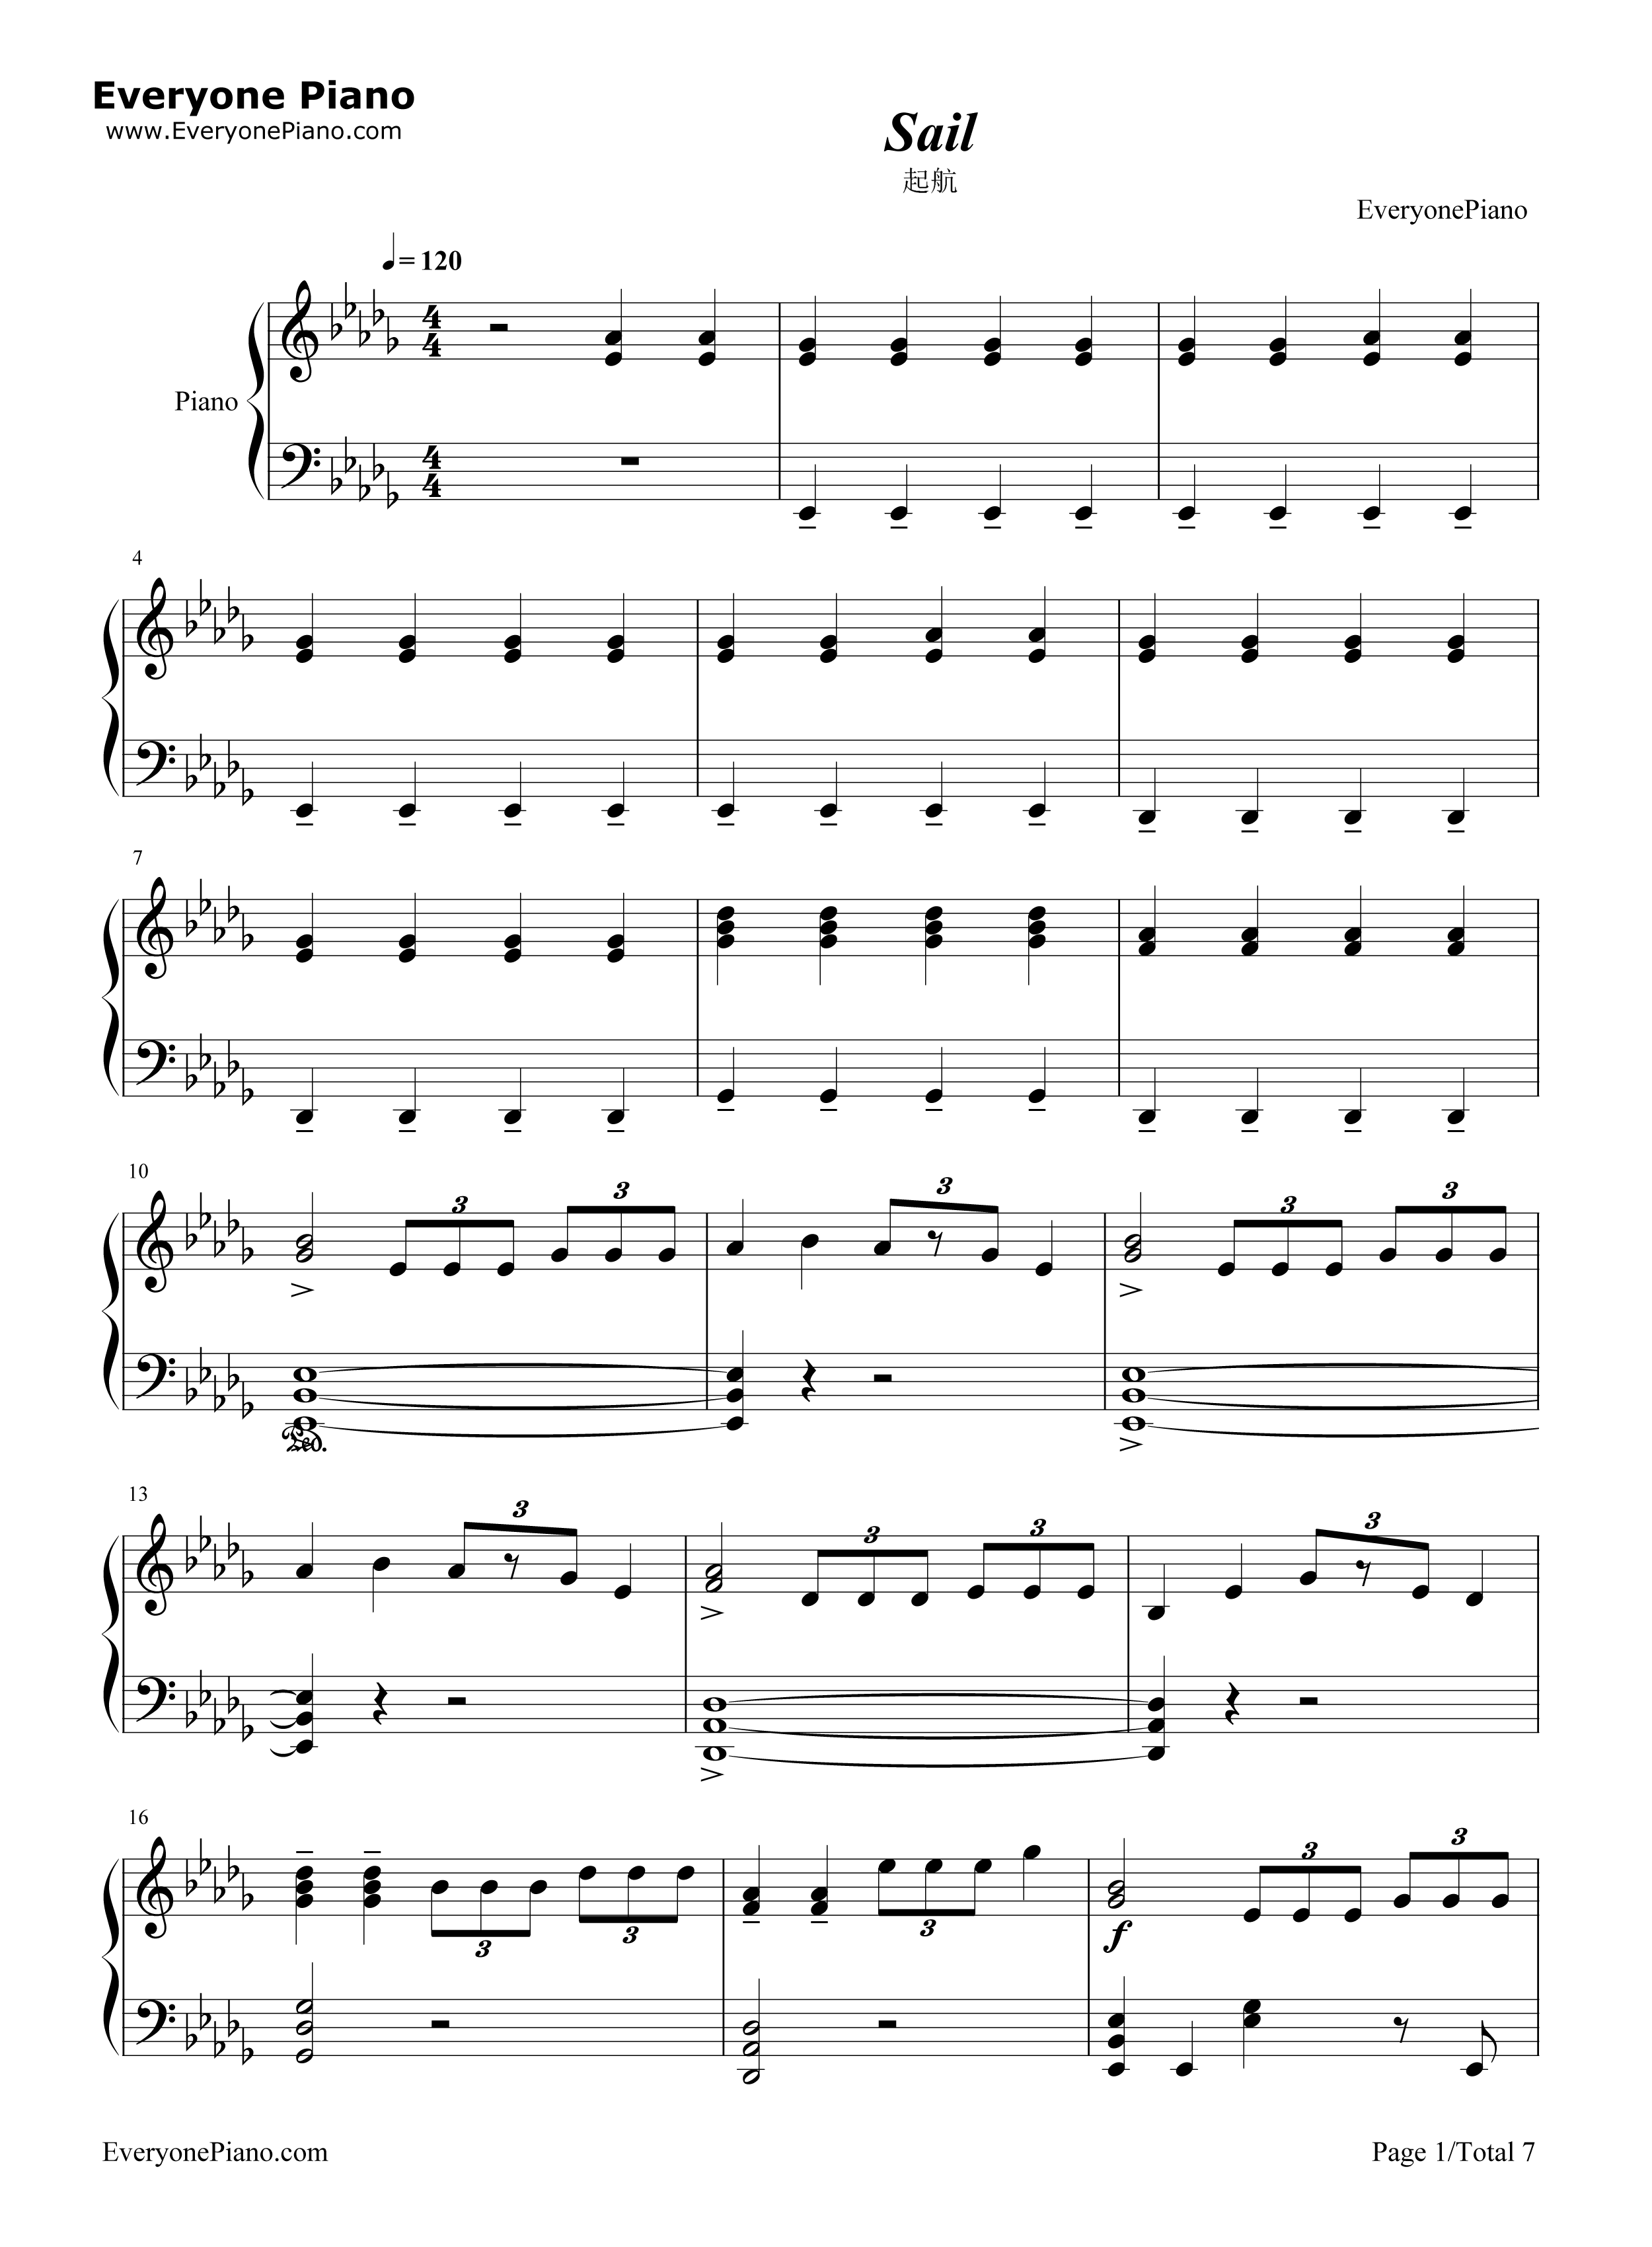 Sail awolnation stave preview 1 free piano sheet music piano chords listen now print sheet sail awolnation stave preview 1 hexwebz Gallery